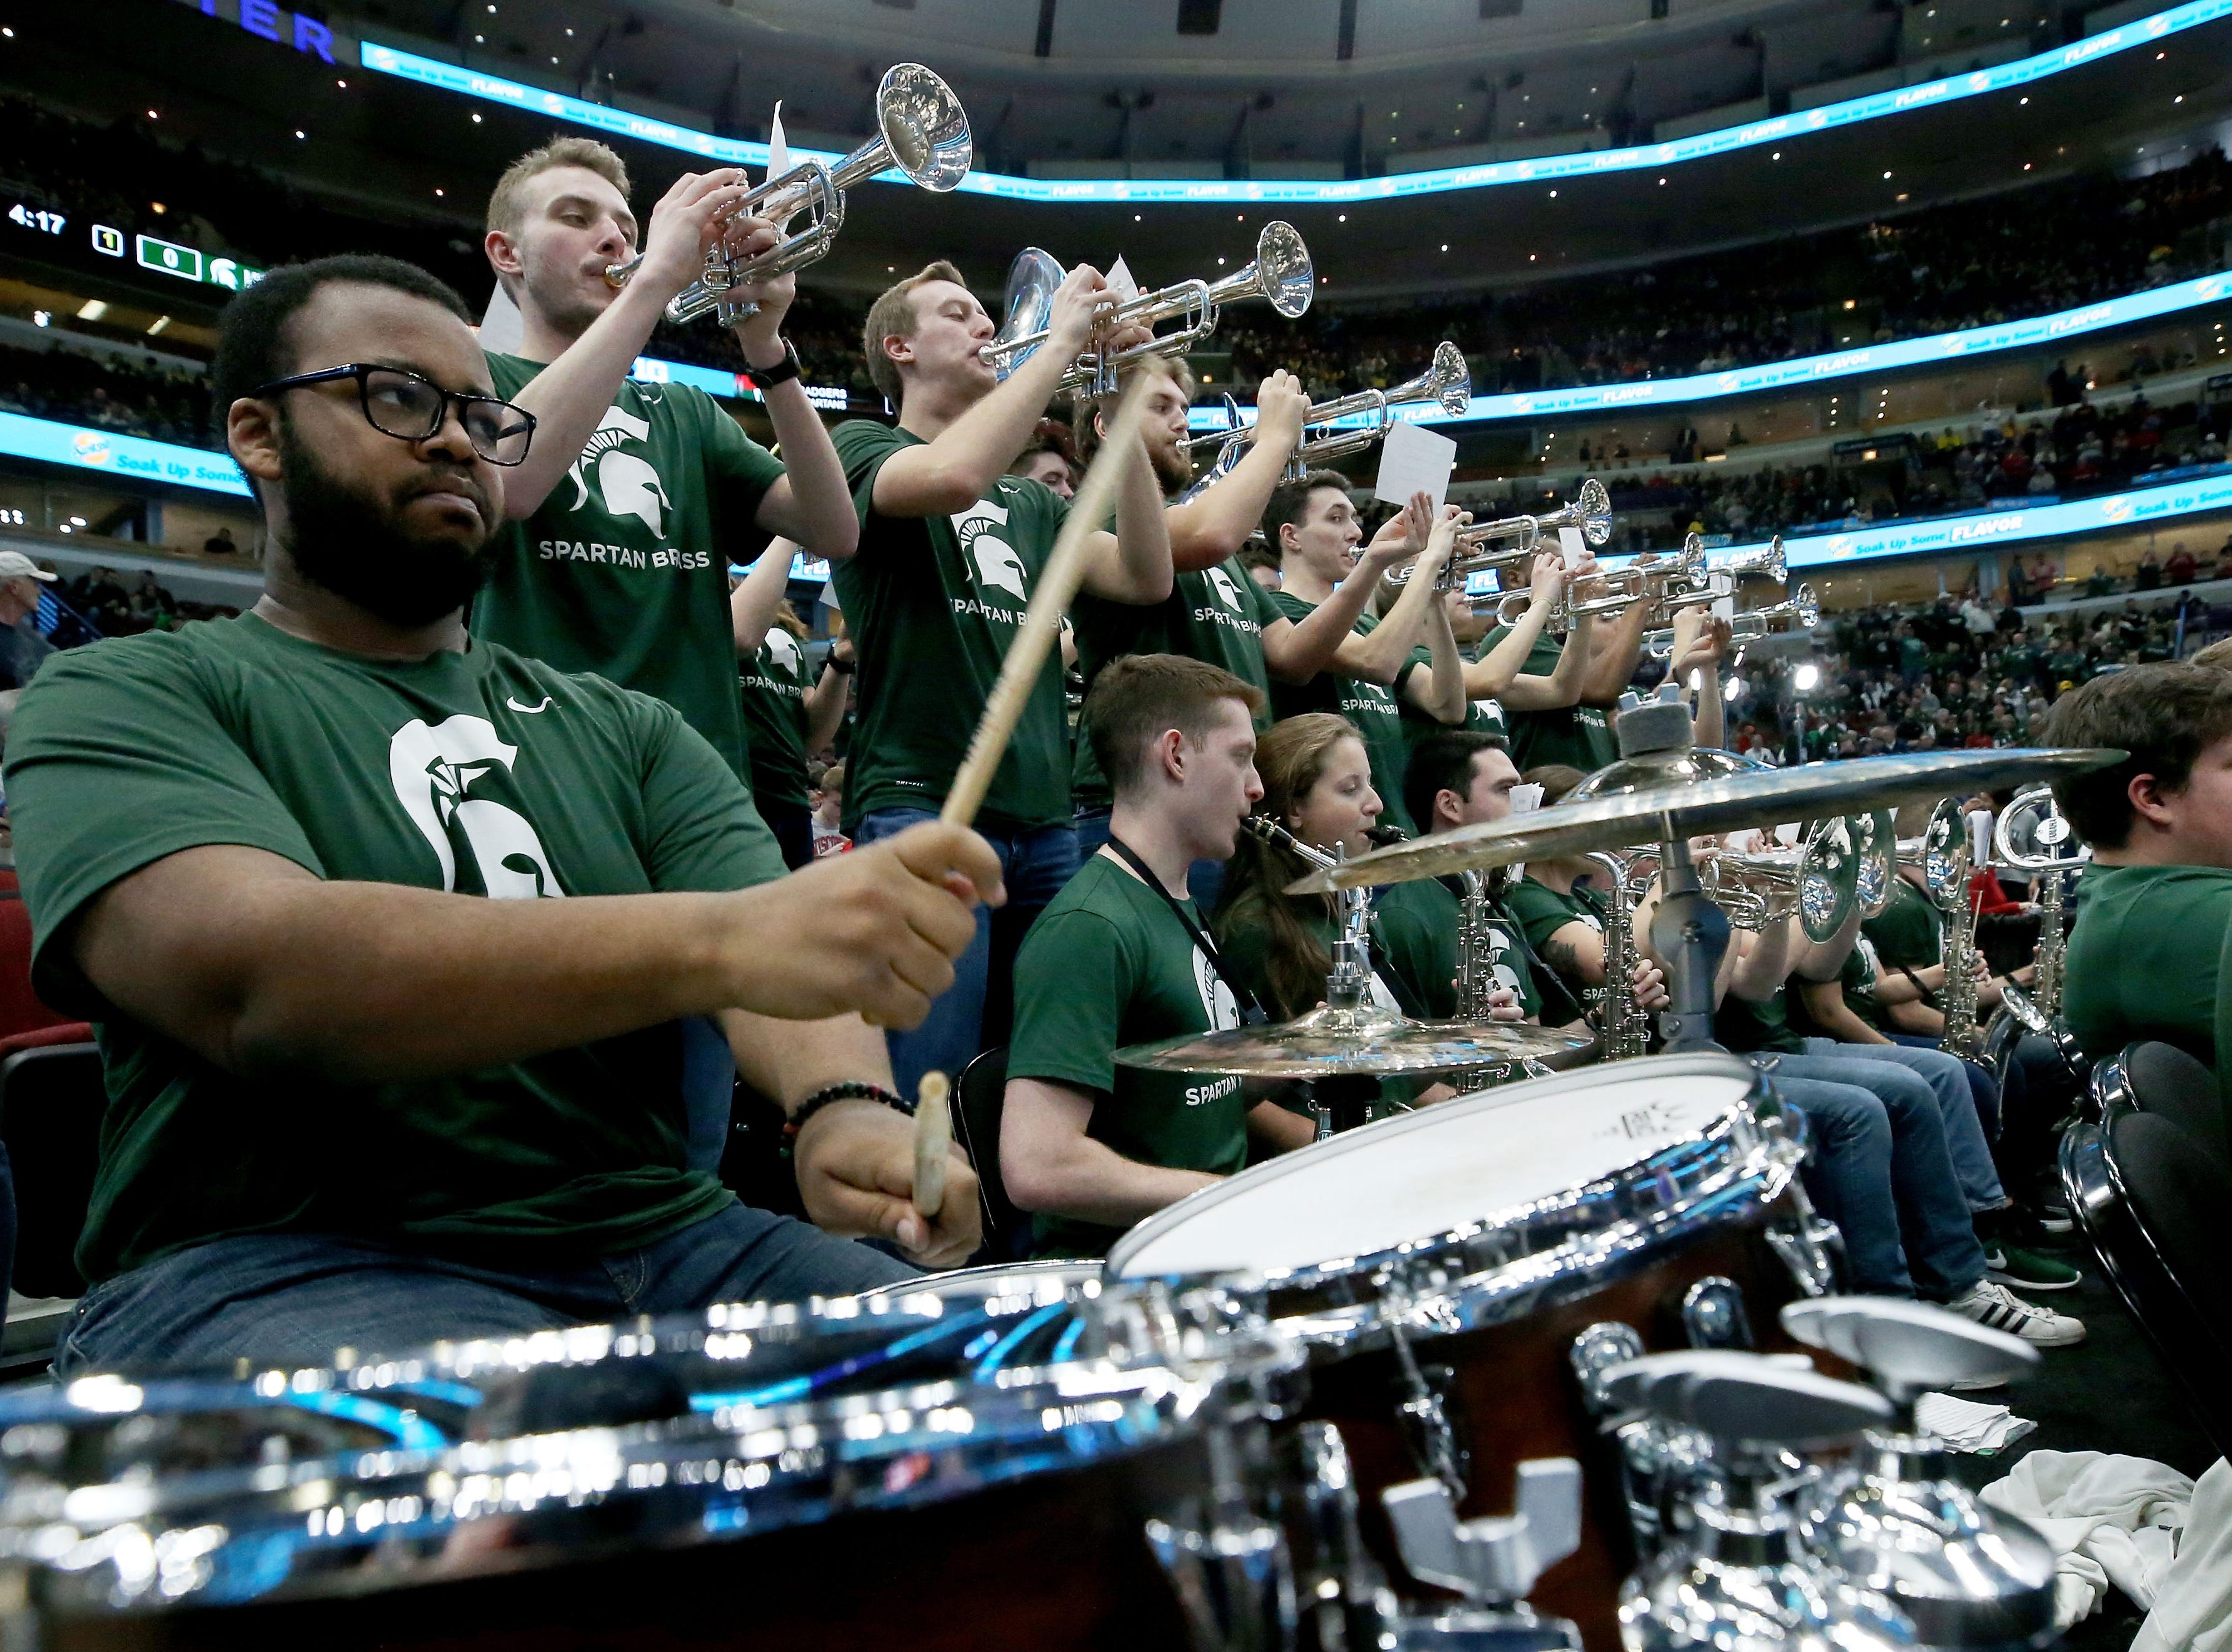 The Michigan State Spartans pep band performs during the semifinals of the Big Ten Basketball Tournament at the United Center on March 16, 2019 in Chicago, Illinois.